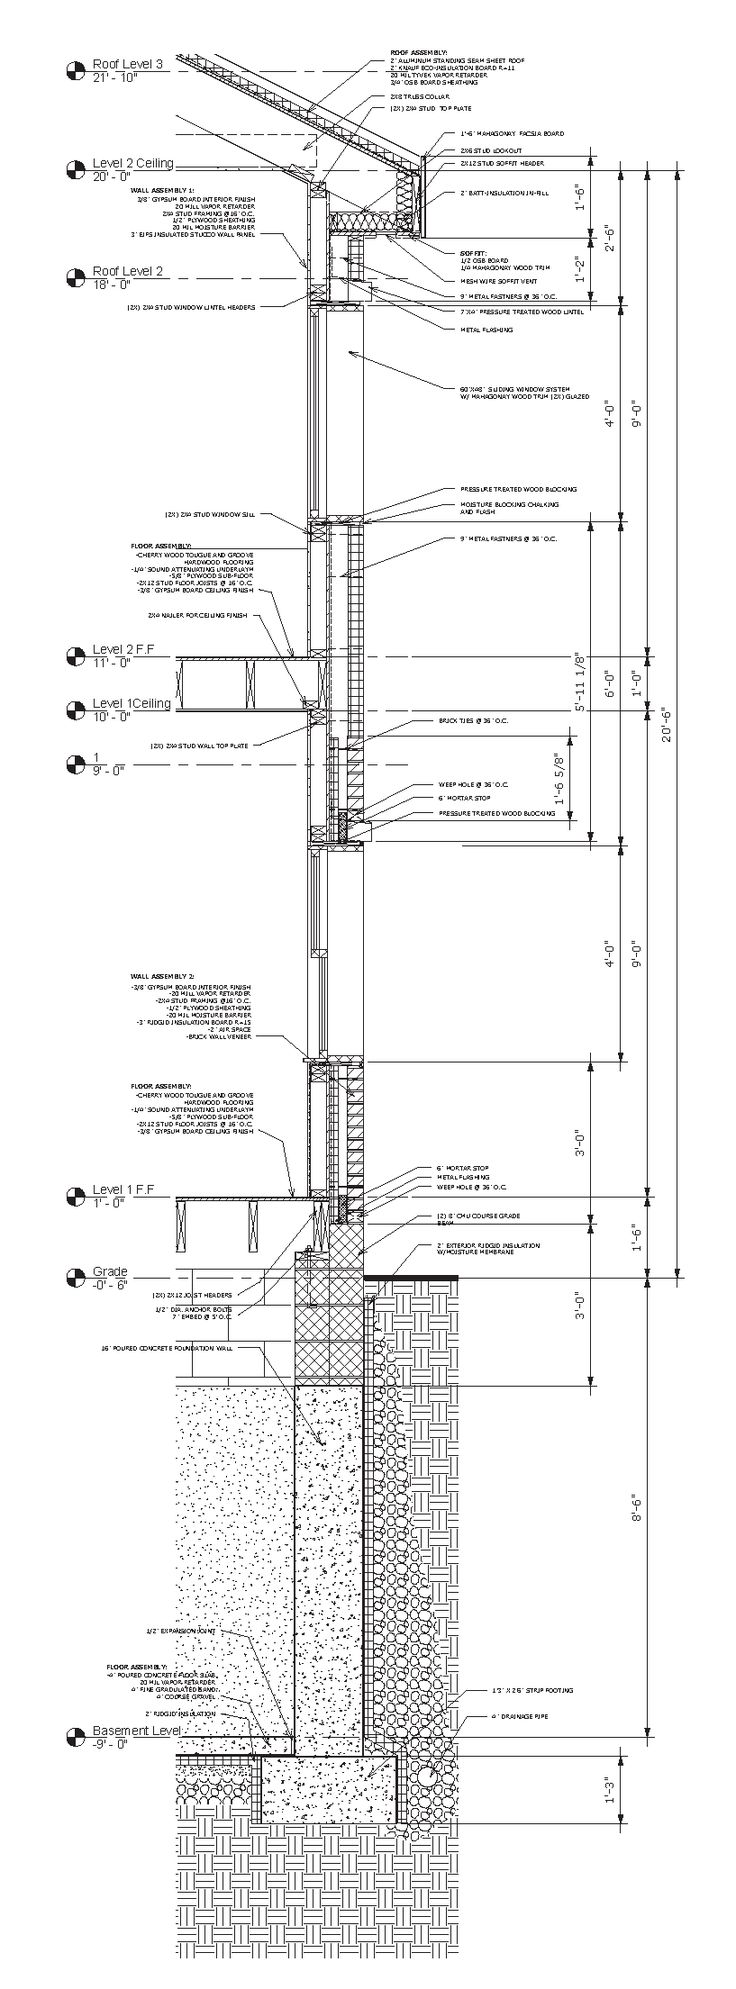 Home Building Construction CAD Software